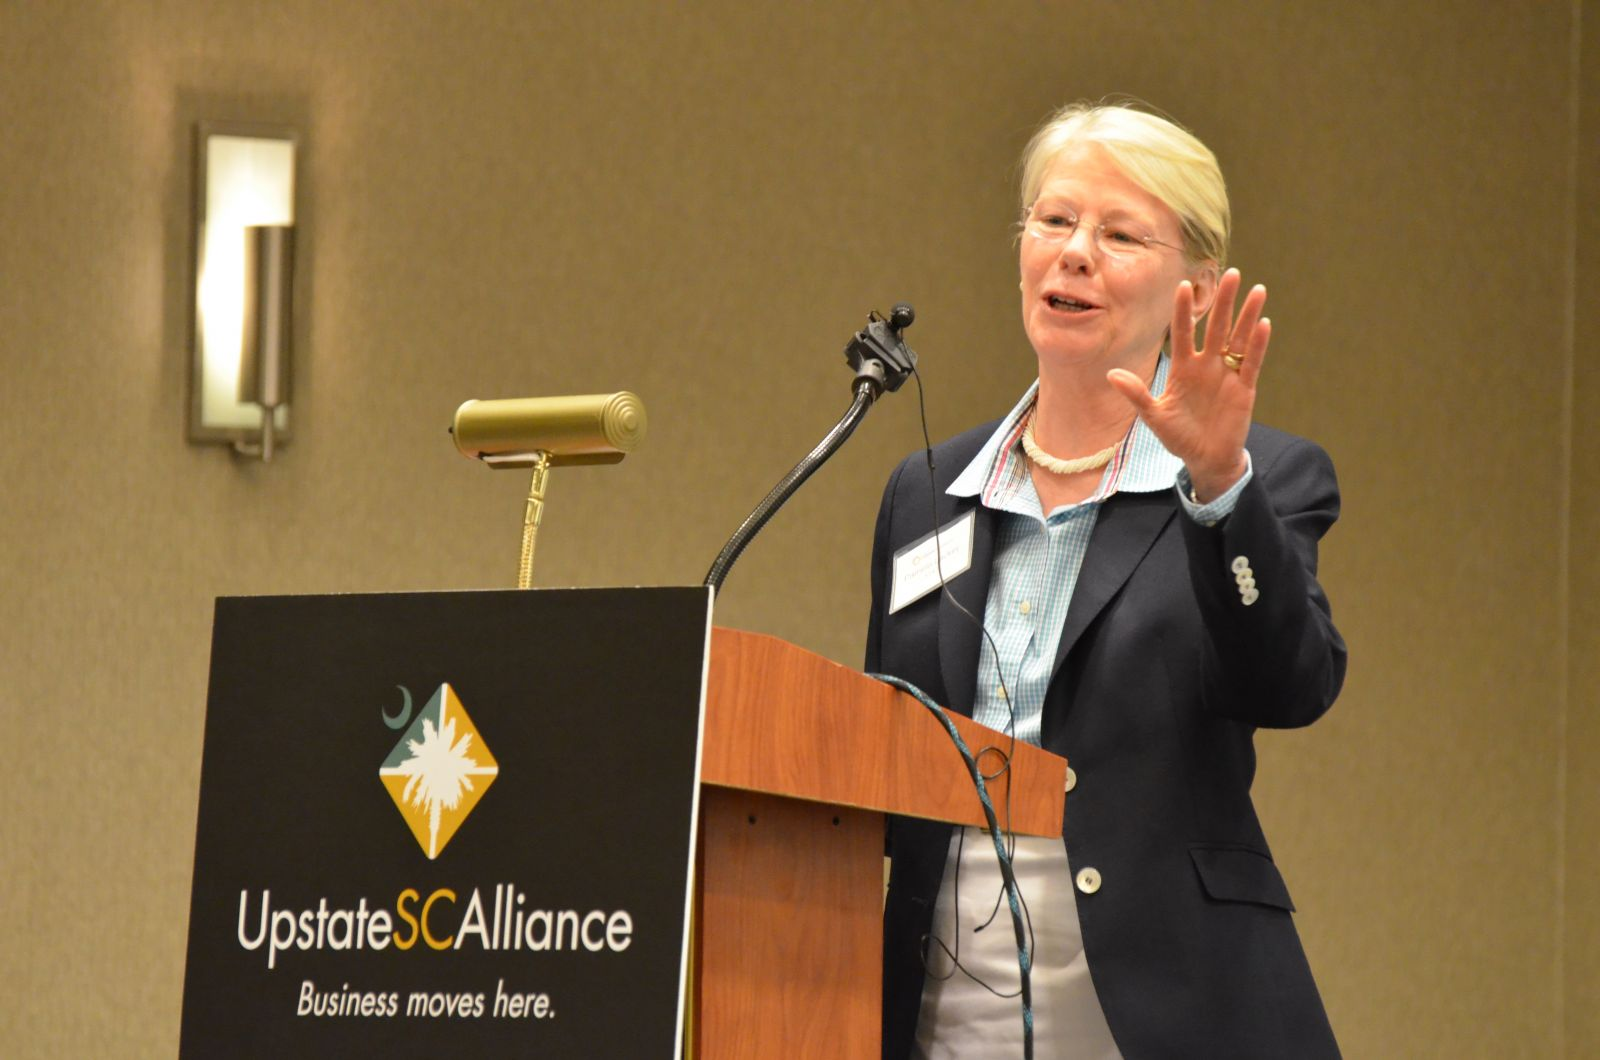 Pamela Lackey delivered the keynote address during the Upstate SC Alliance mid-year meeting. (Photo/Matthew Clark)